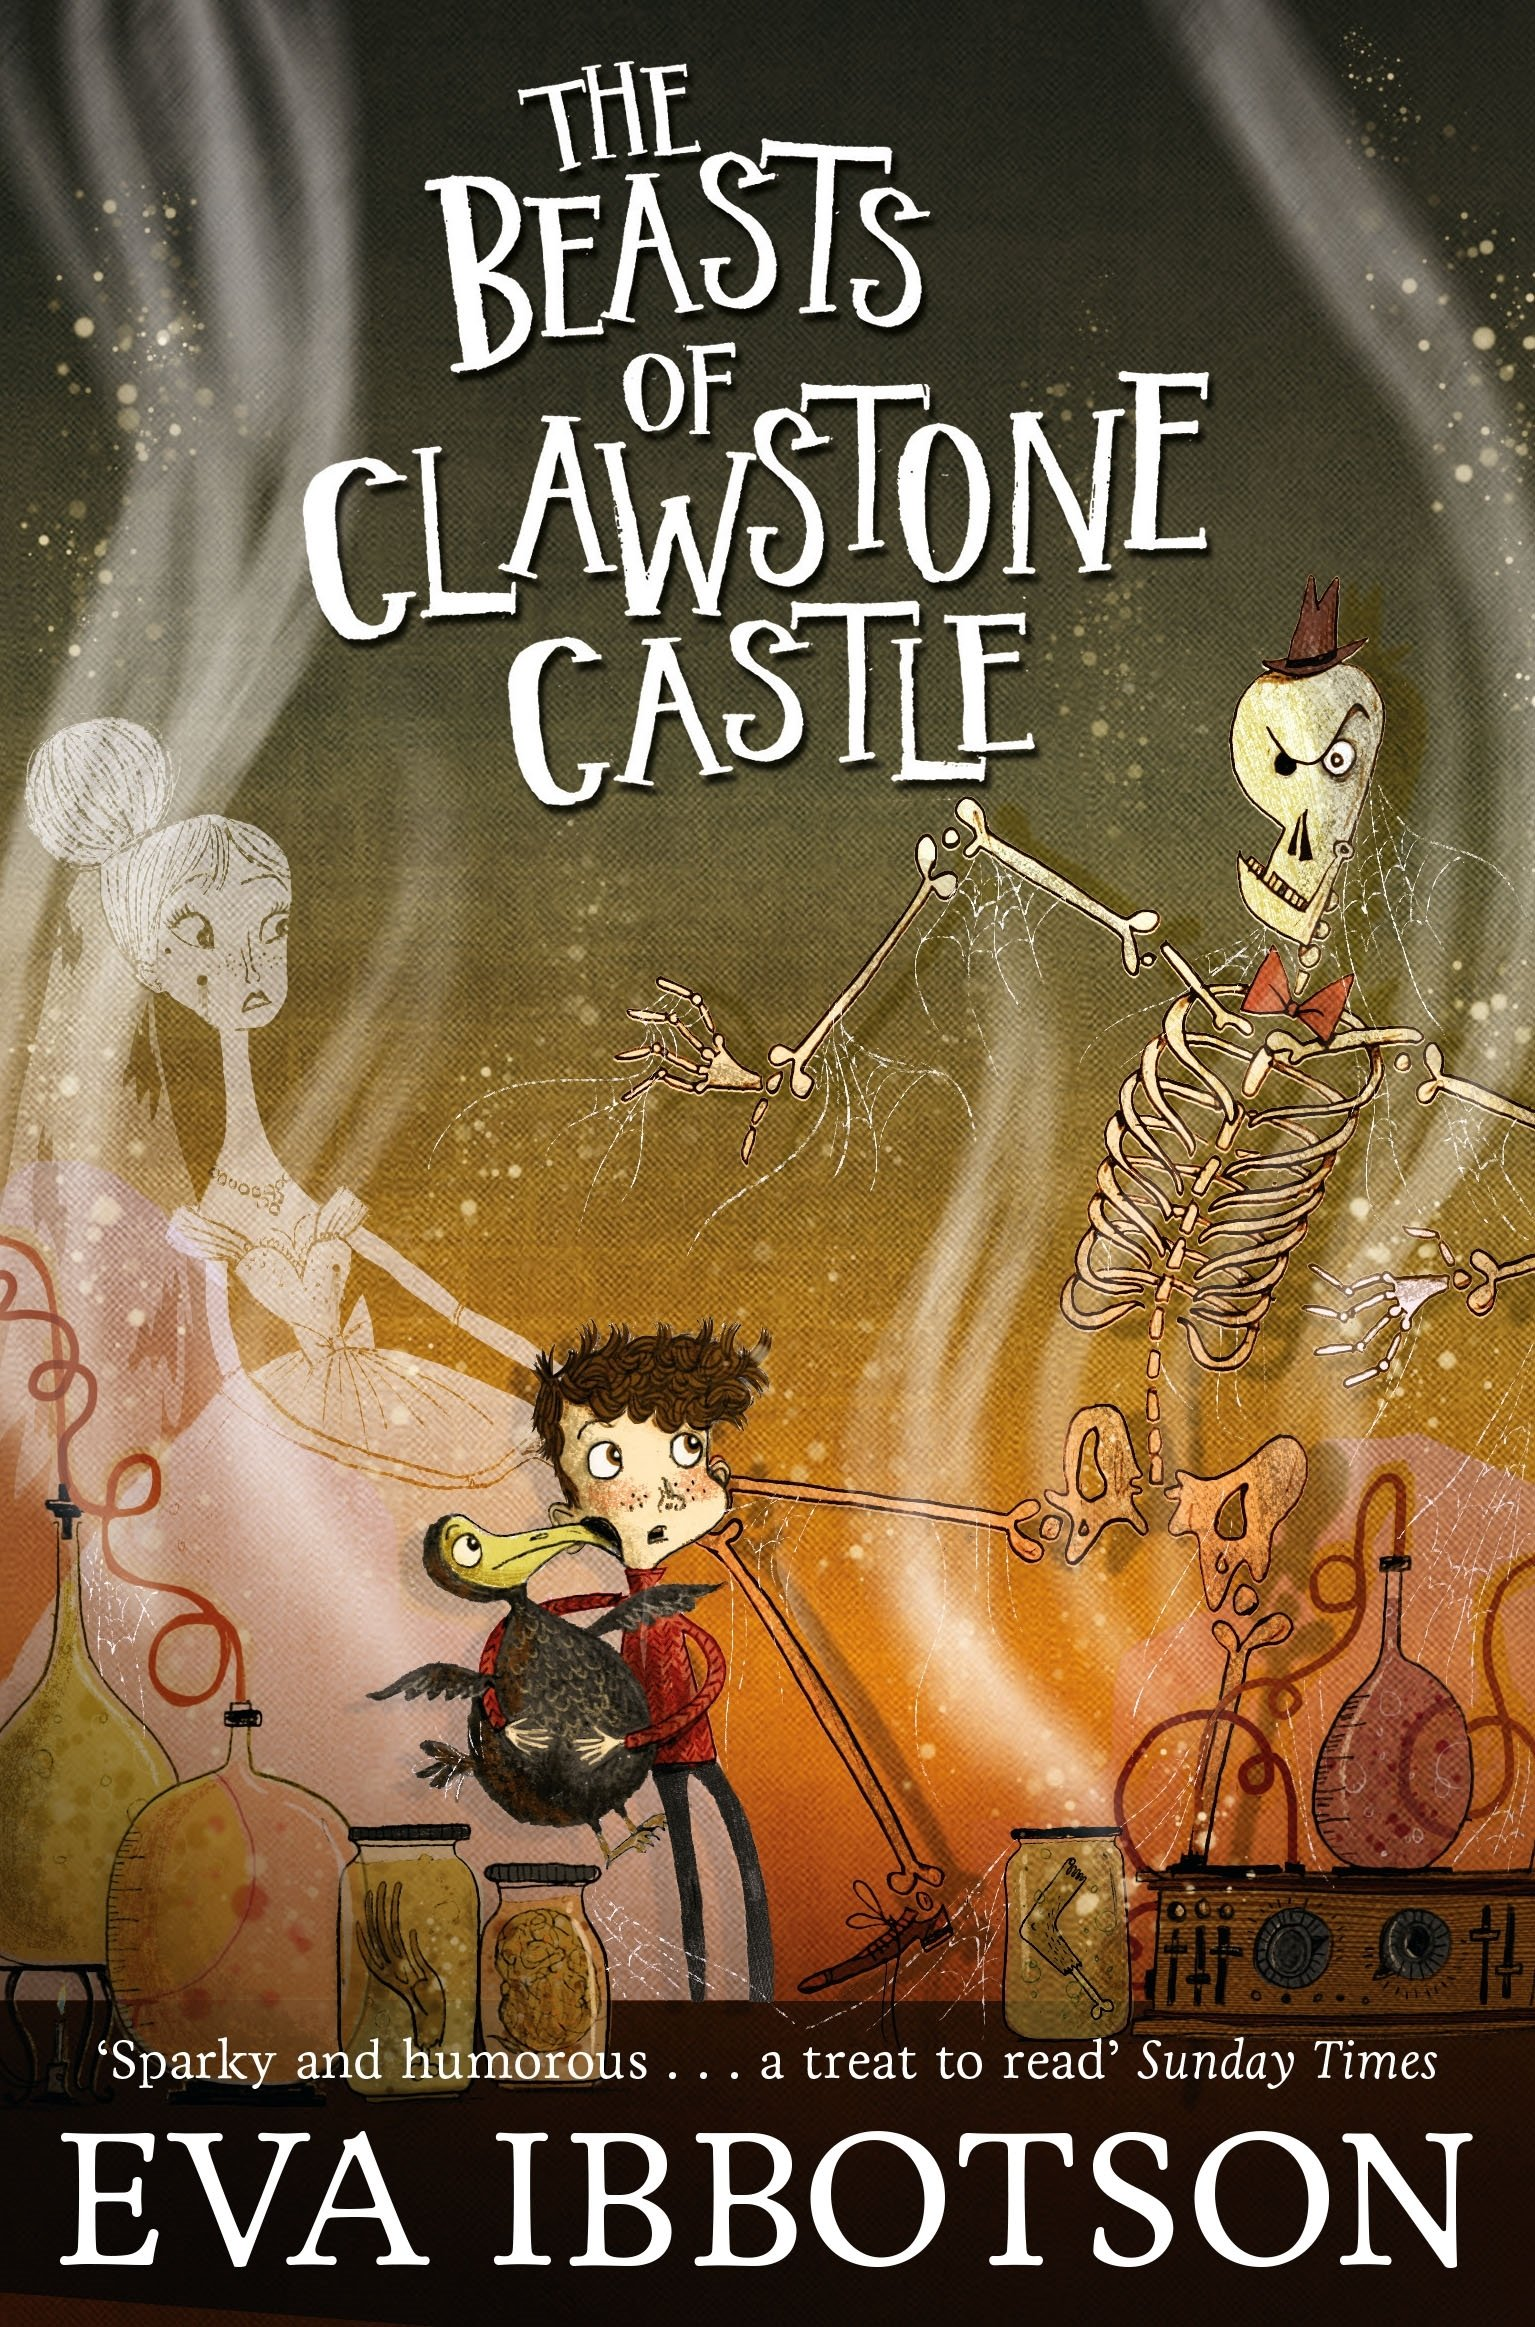 The Beasts of Clawstone Castle: Eva Ibbotson: 9781447265634: Amazon ...